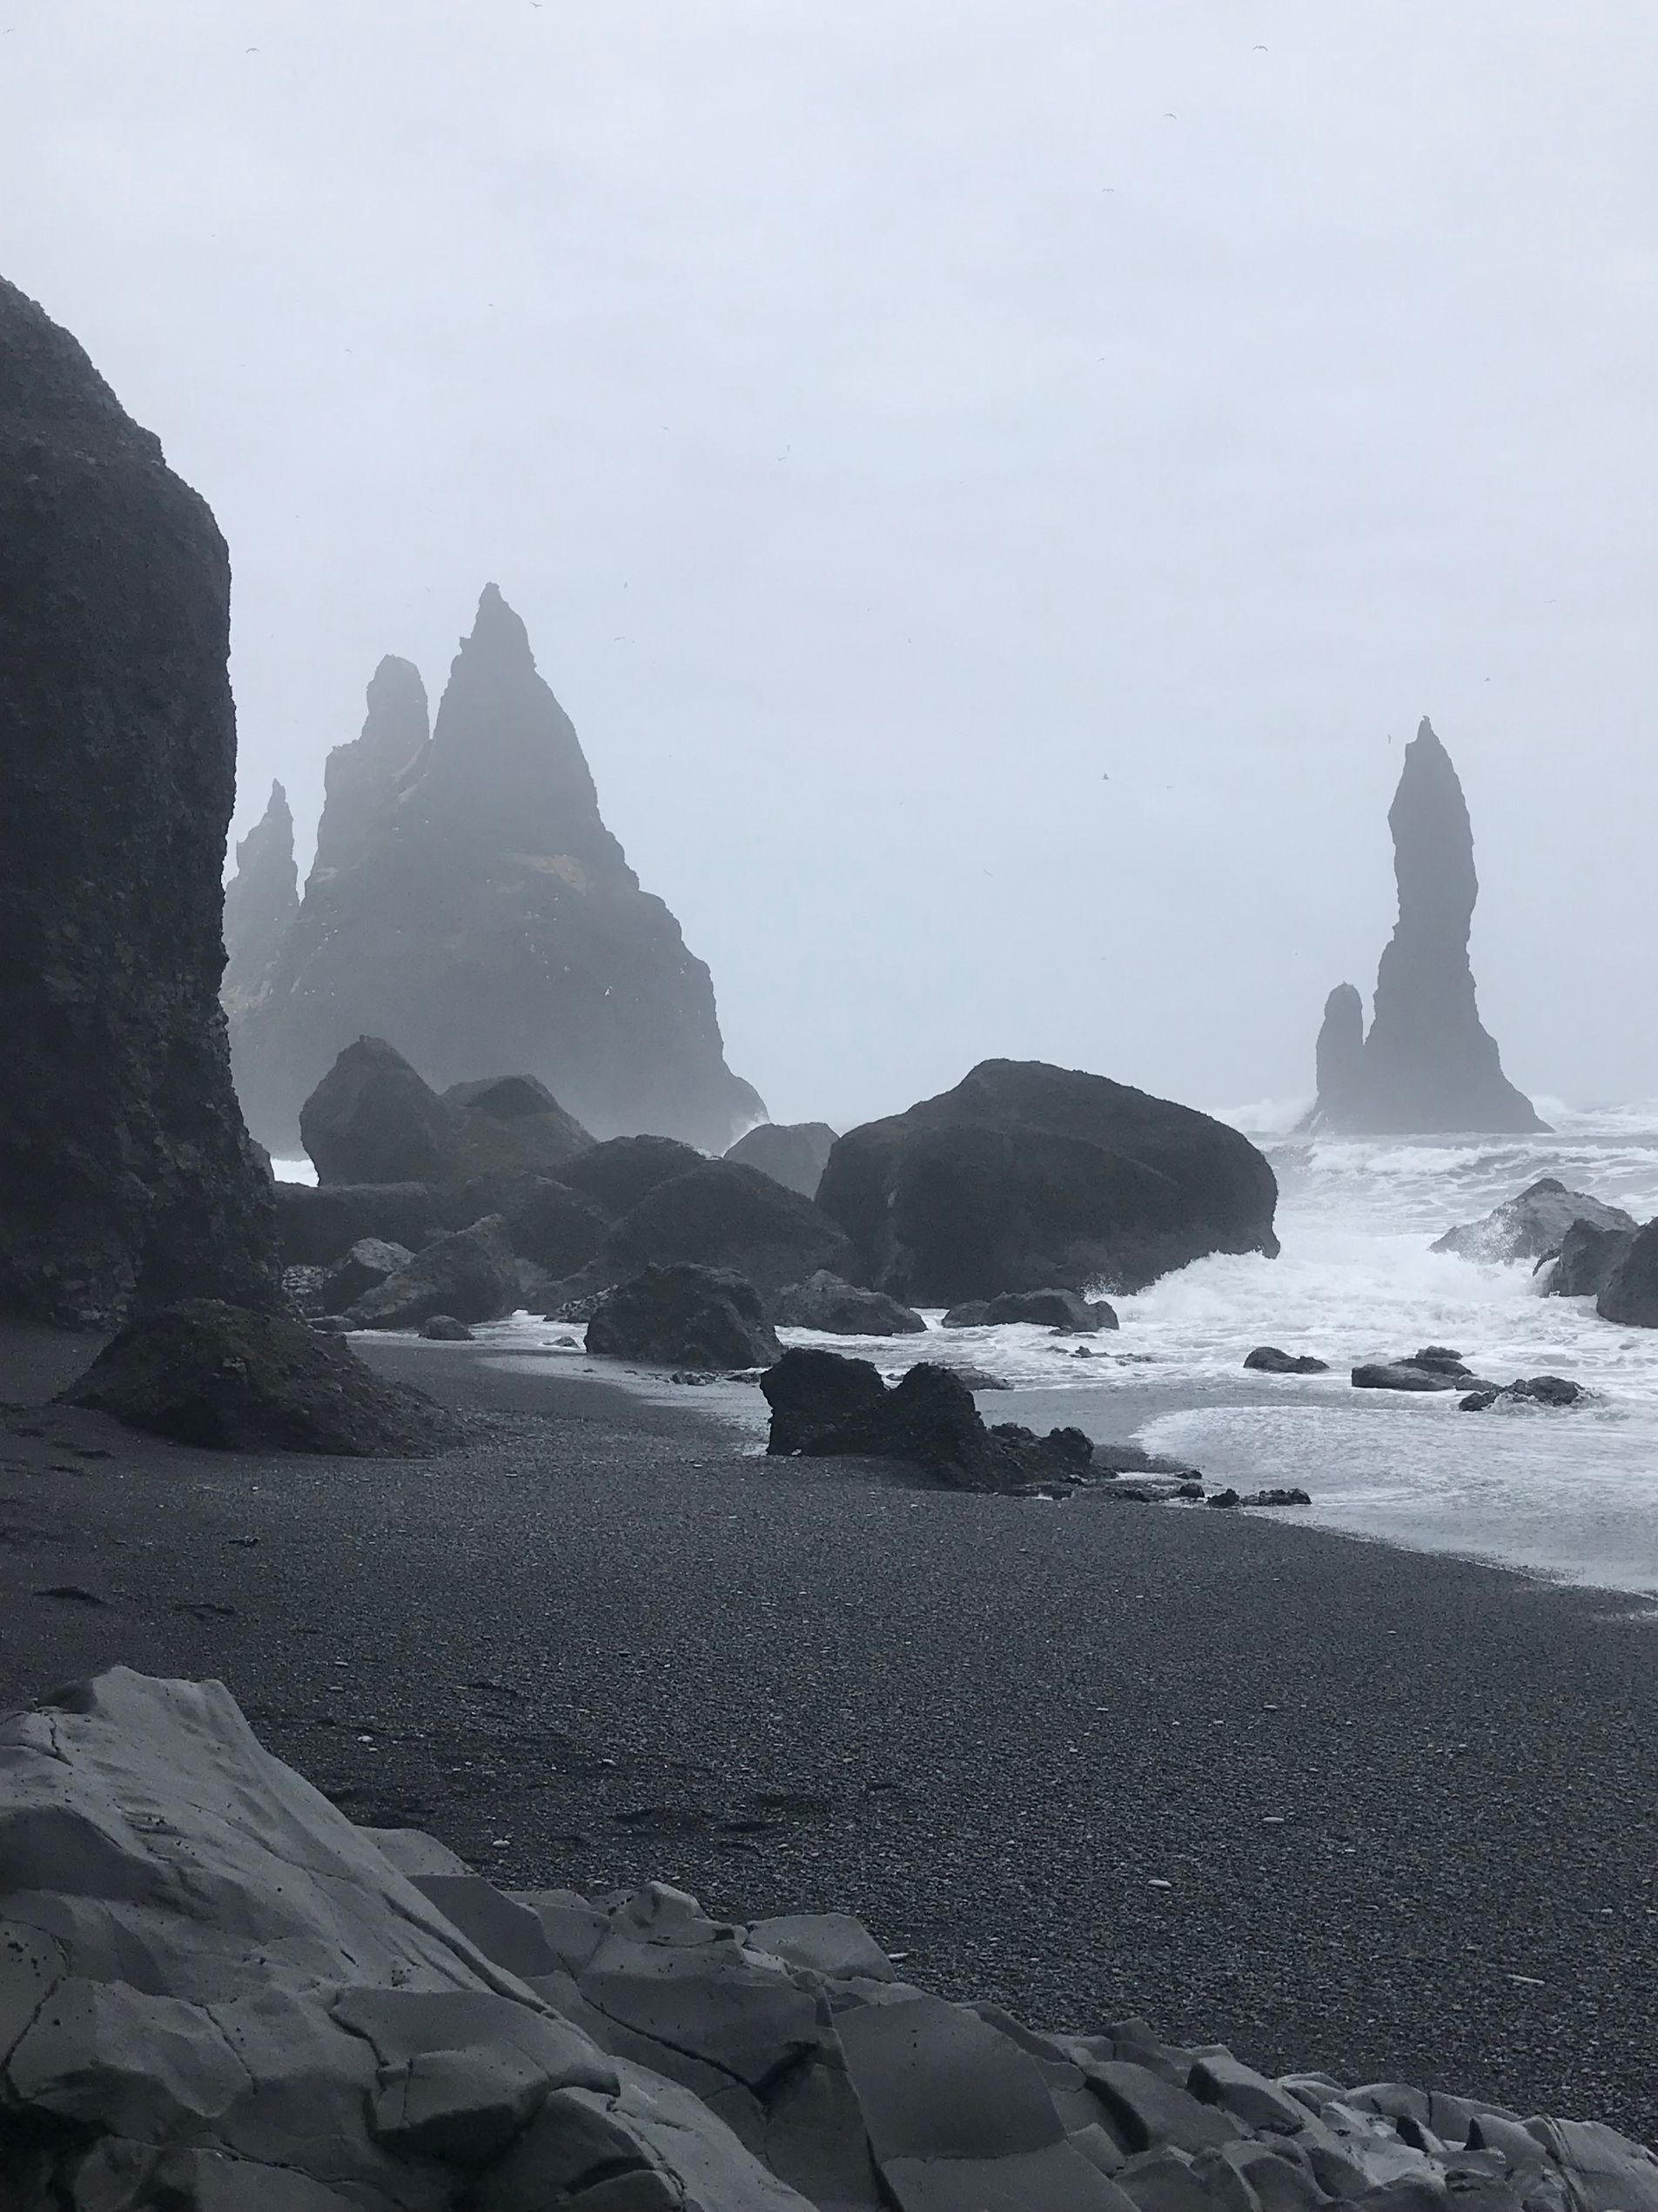 Black sand beach with lava rock formations coming out of winter ocean in Iceland - stop in 24 hour Iceland itinerary